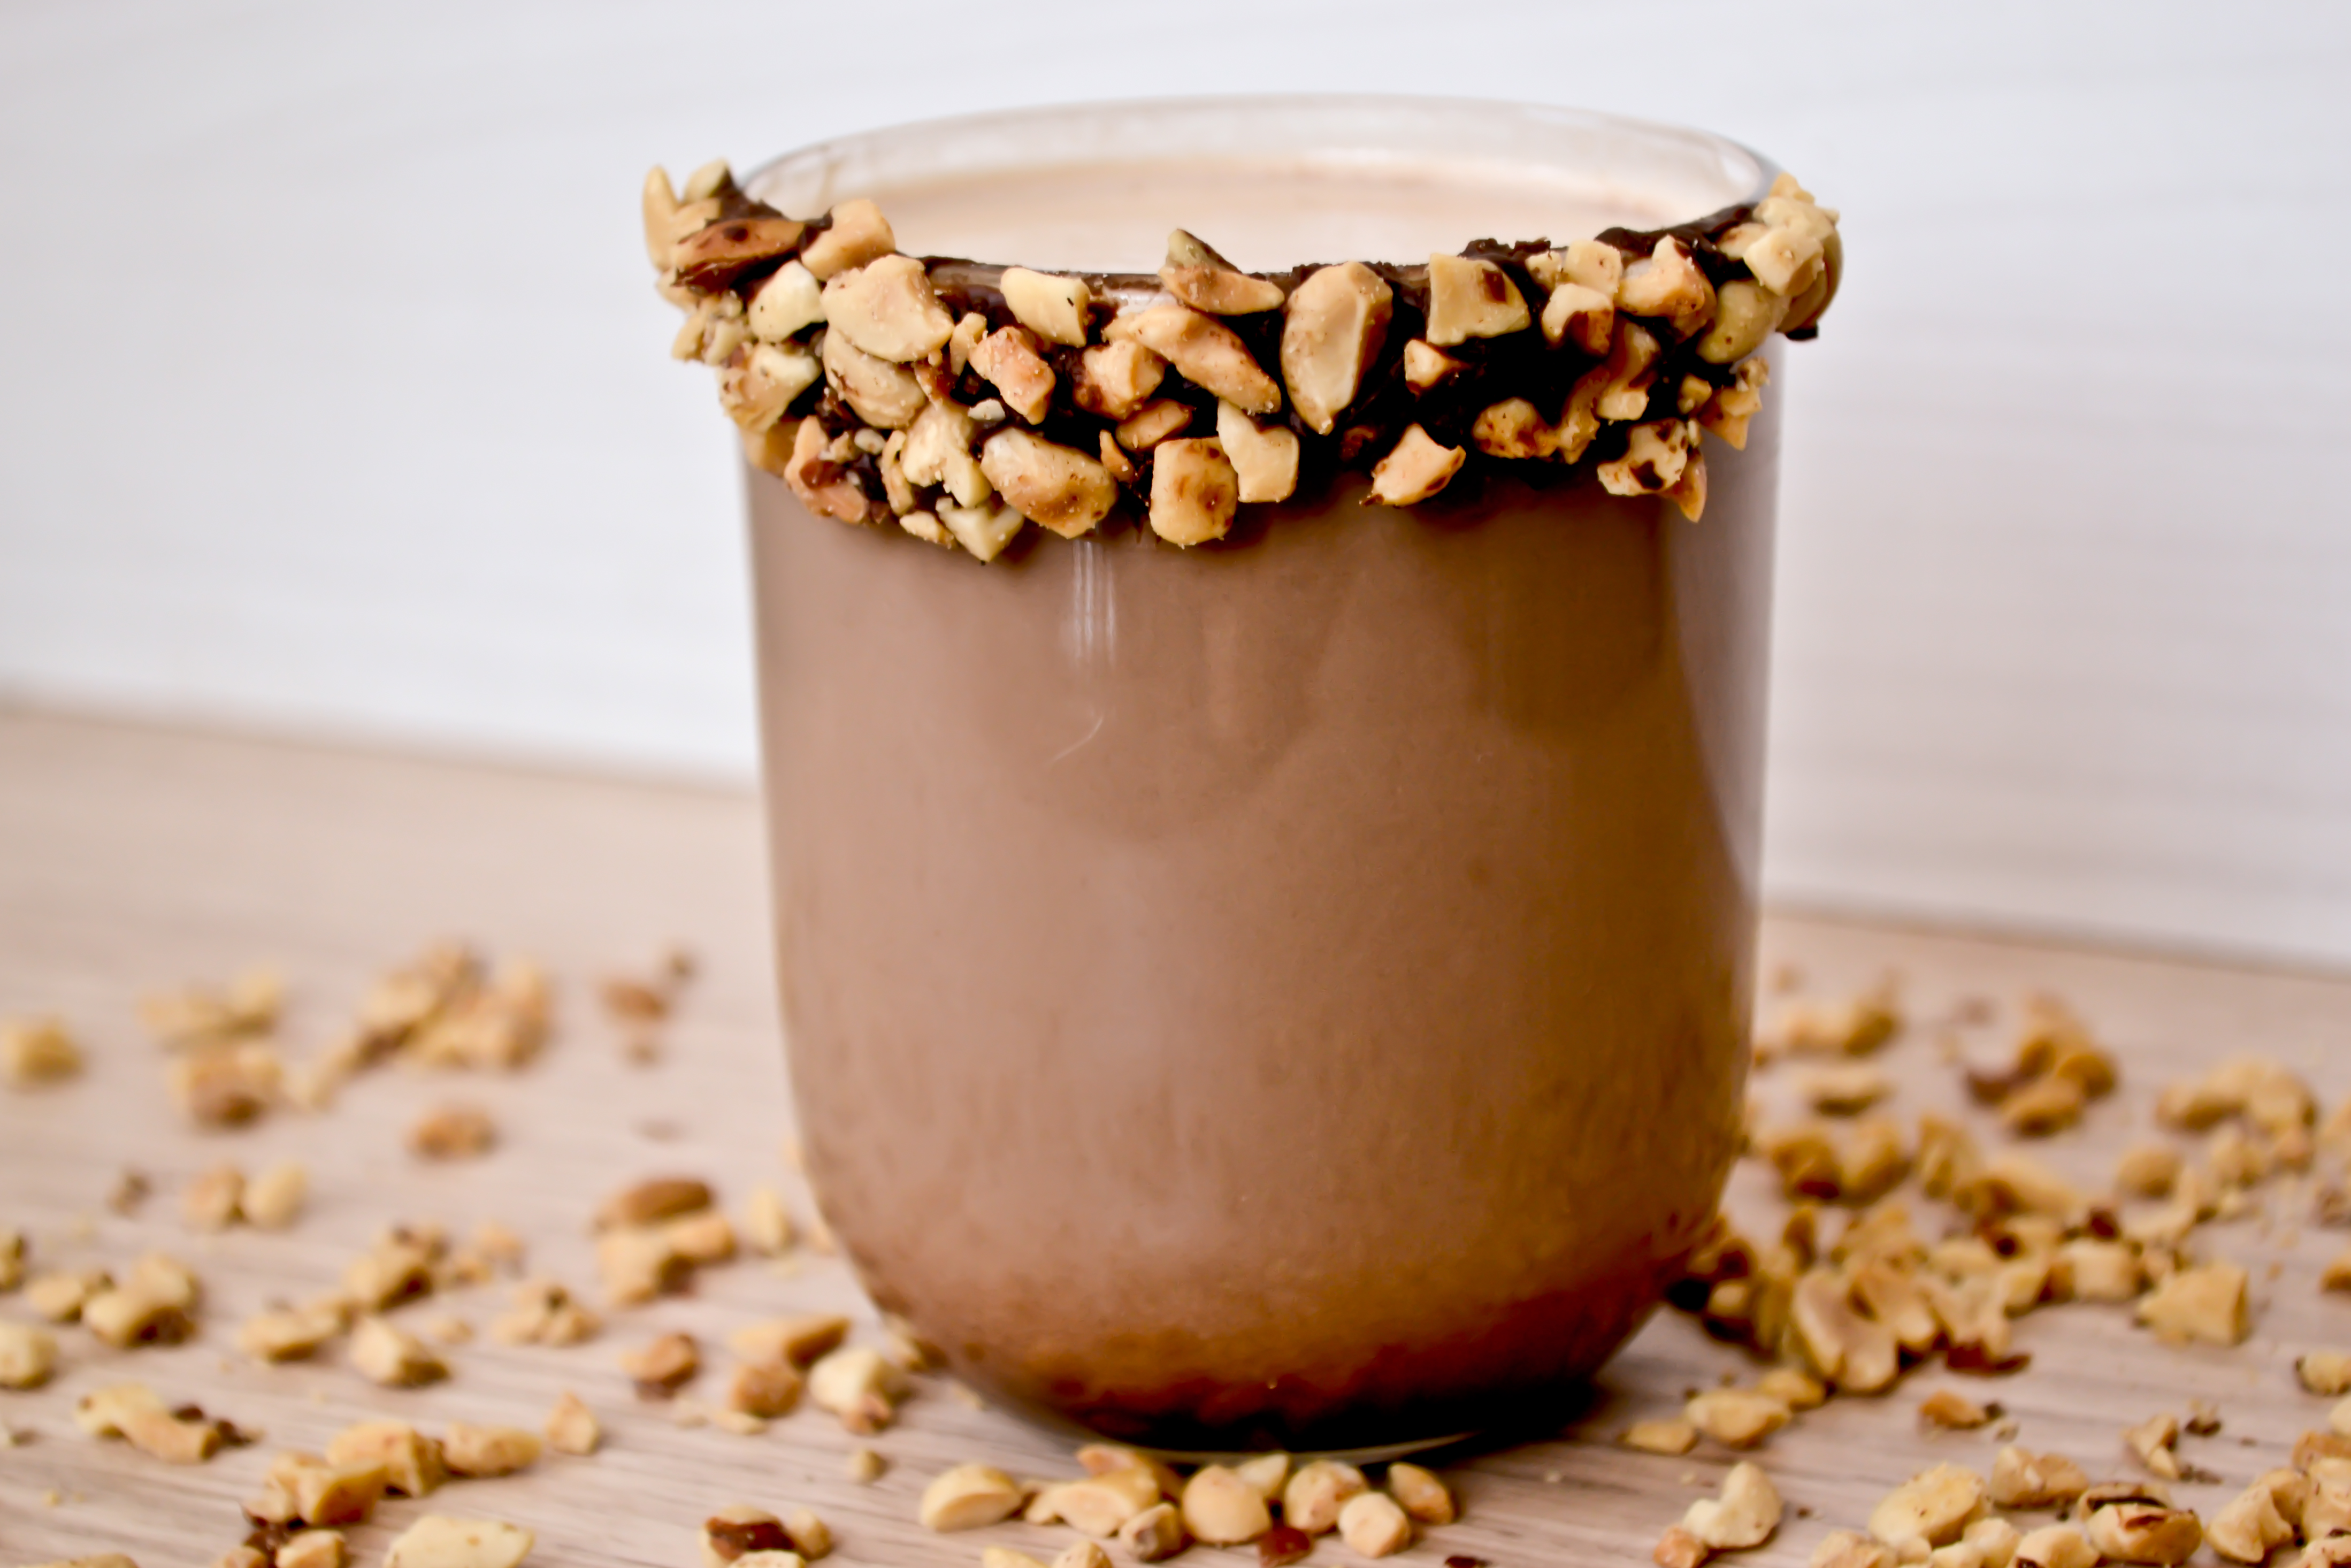 hot chocolate recipe with peanut butter